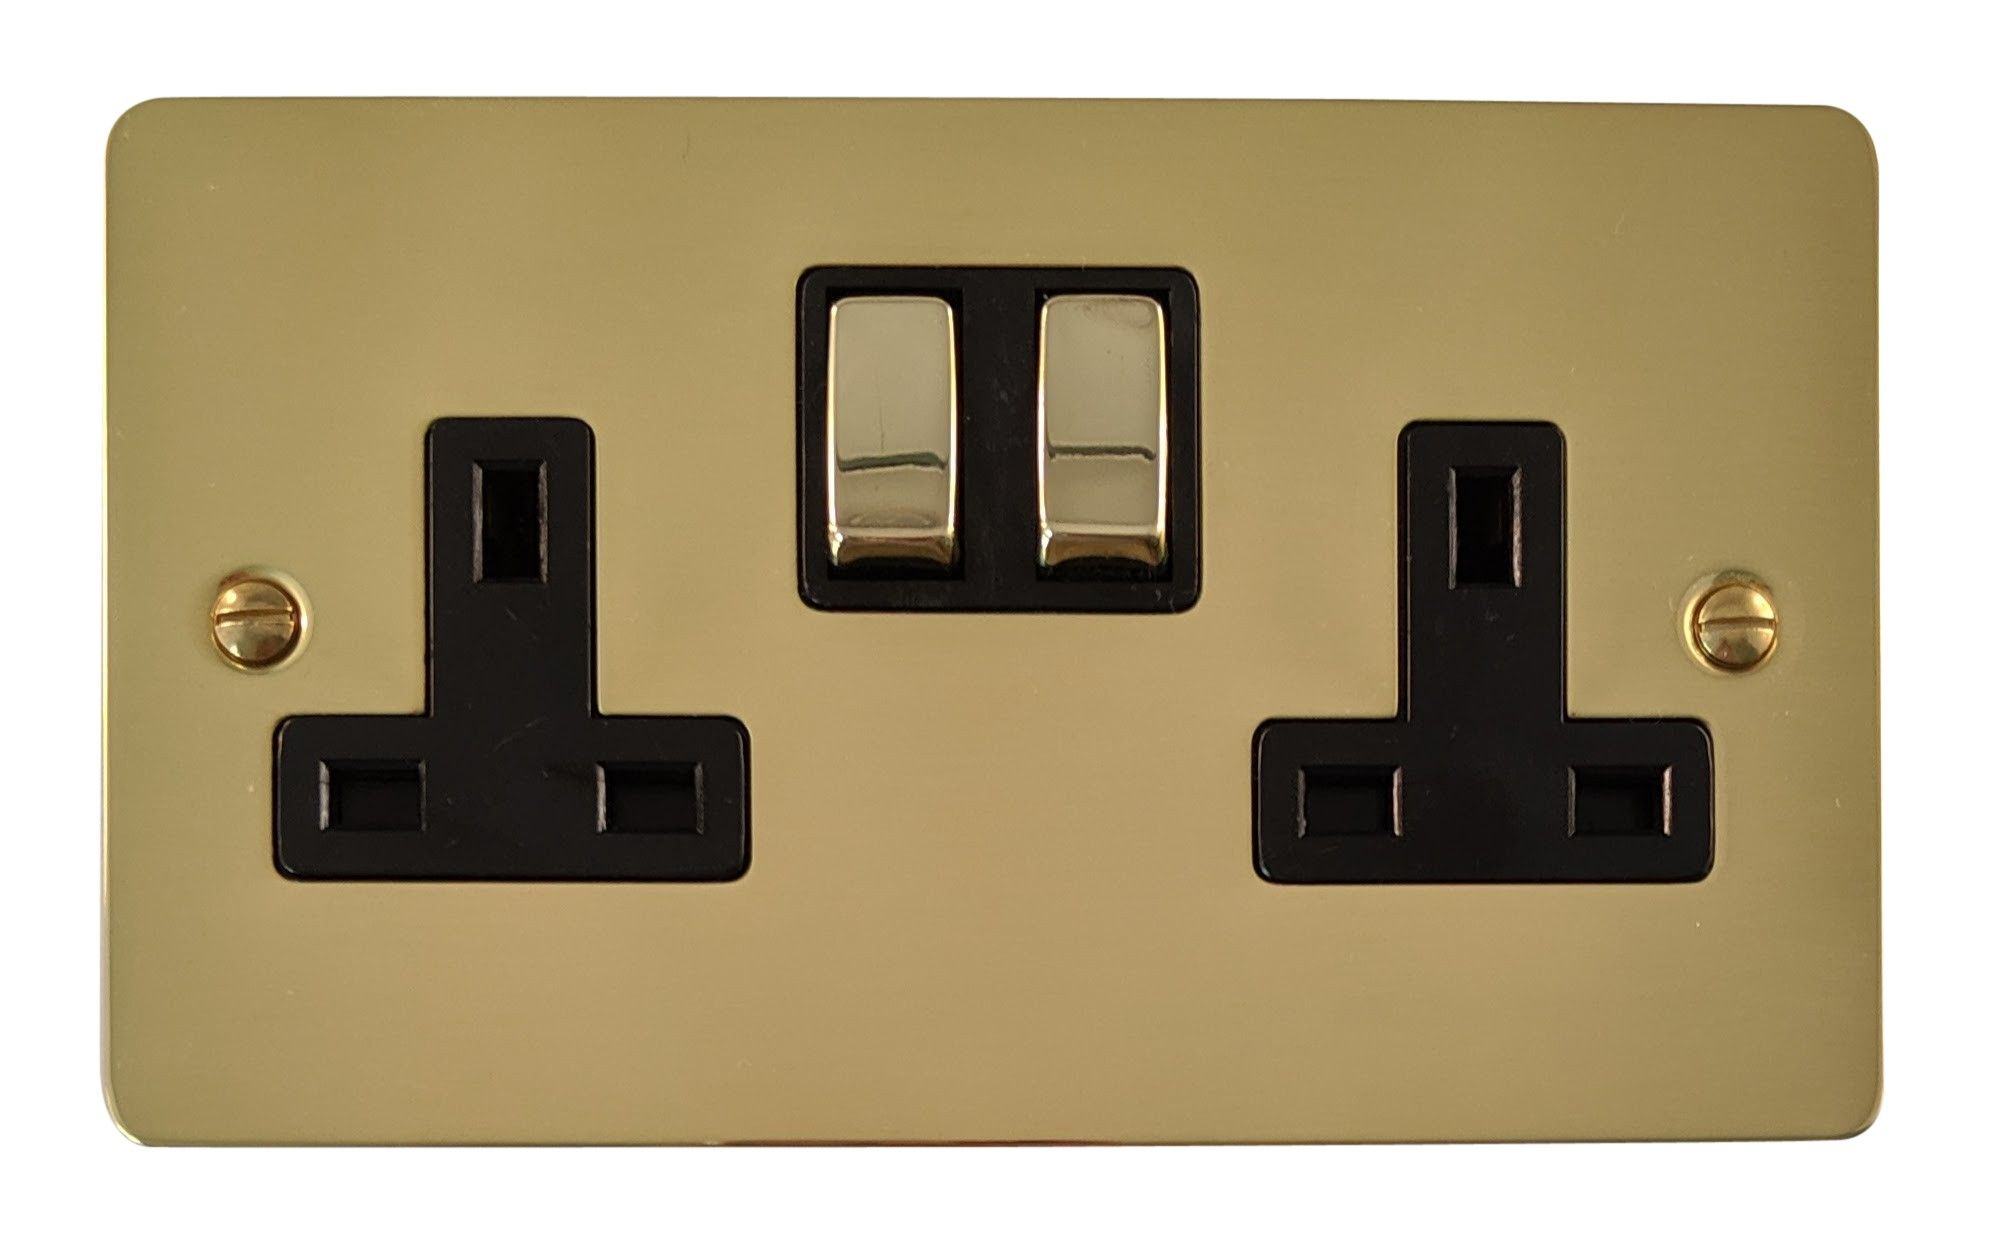 G&H FB310 Flat Plate Polished Brass 2 Gang Double 13A Switched Plug Socket